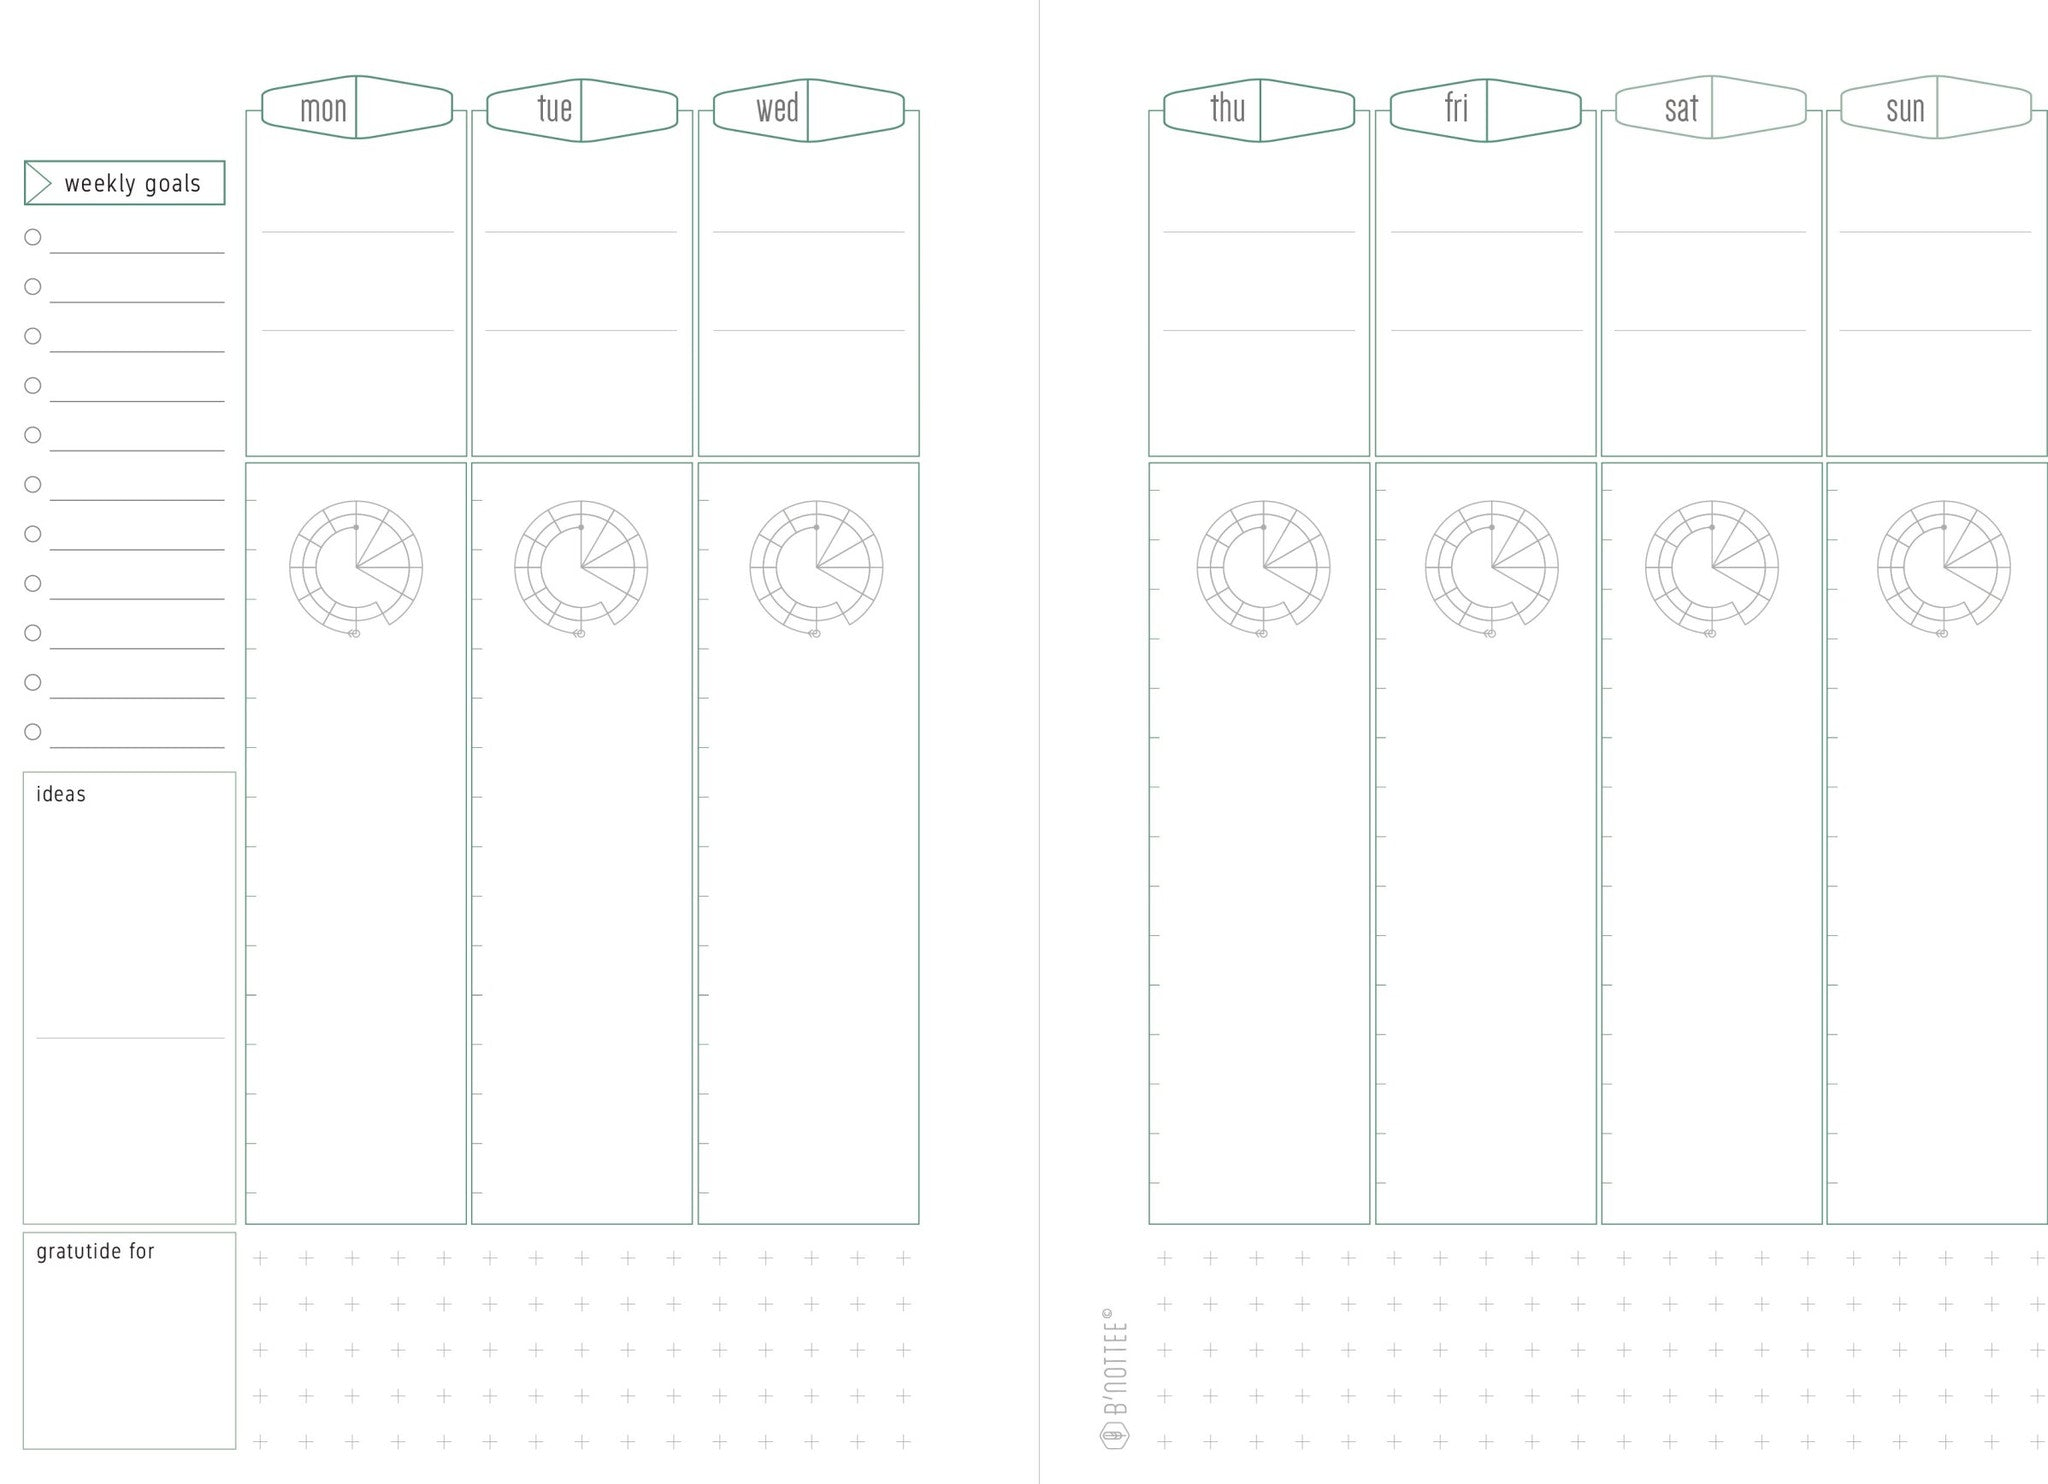 image regarding A5 Planner Printable titled Absolutely free Weekly A5 Planner Printable - Nottee 3.0 - BNottee